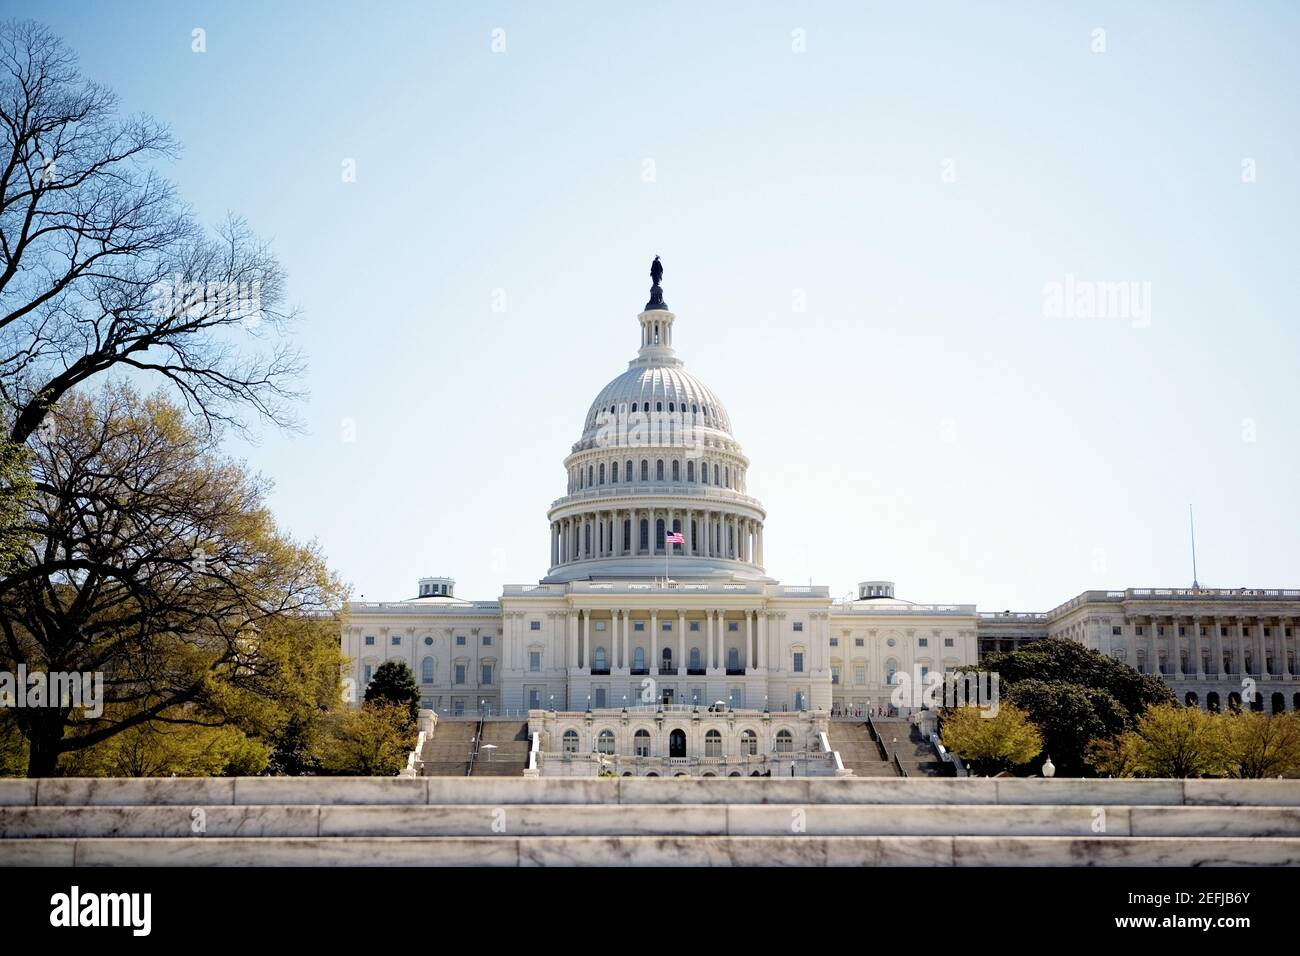 Low angle view of United States Capitol Building, Washington DC, USA Stock Photo